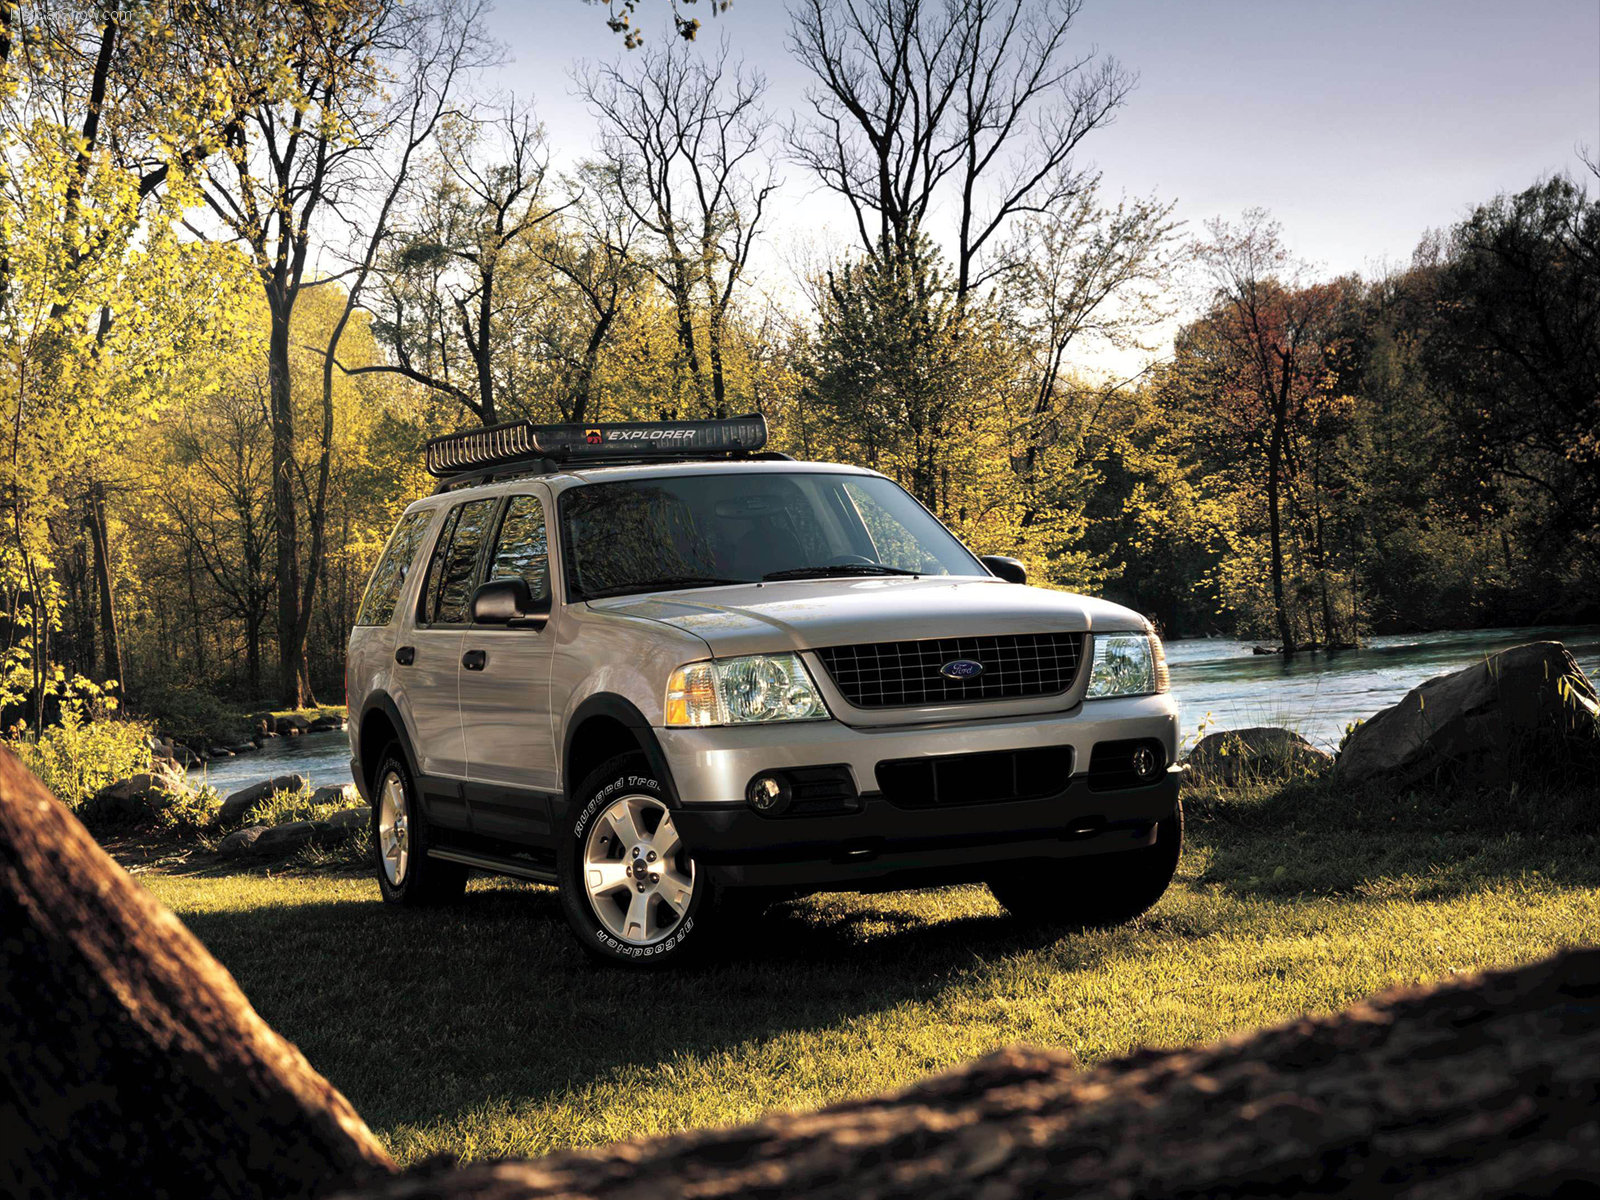 1600x1200 - Ford Explorer Wallpapers 22